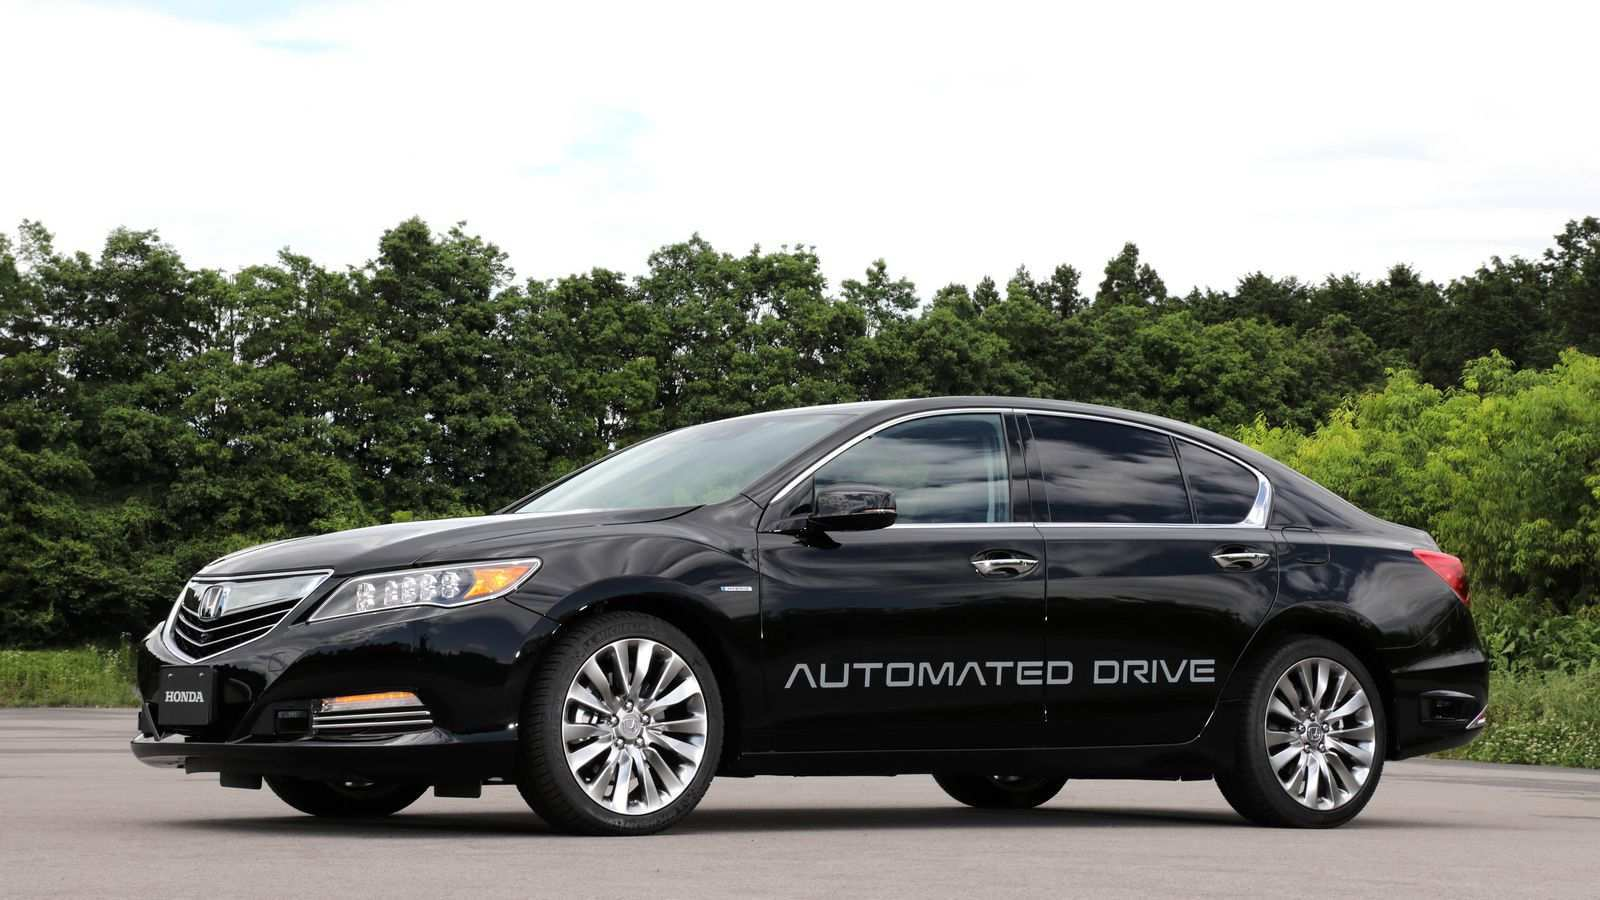 64 Gallery of Honda Legend 2020 Ratings with Honda Legend 2020